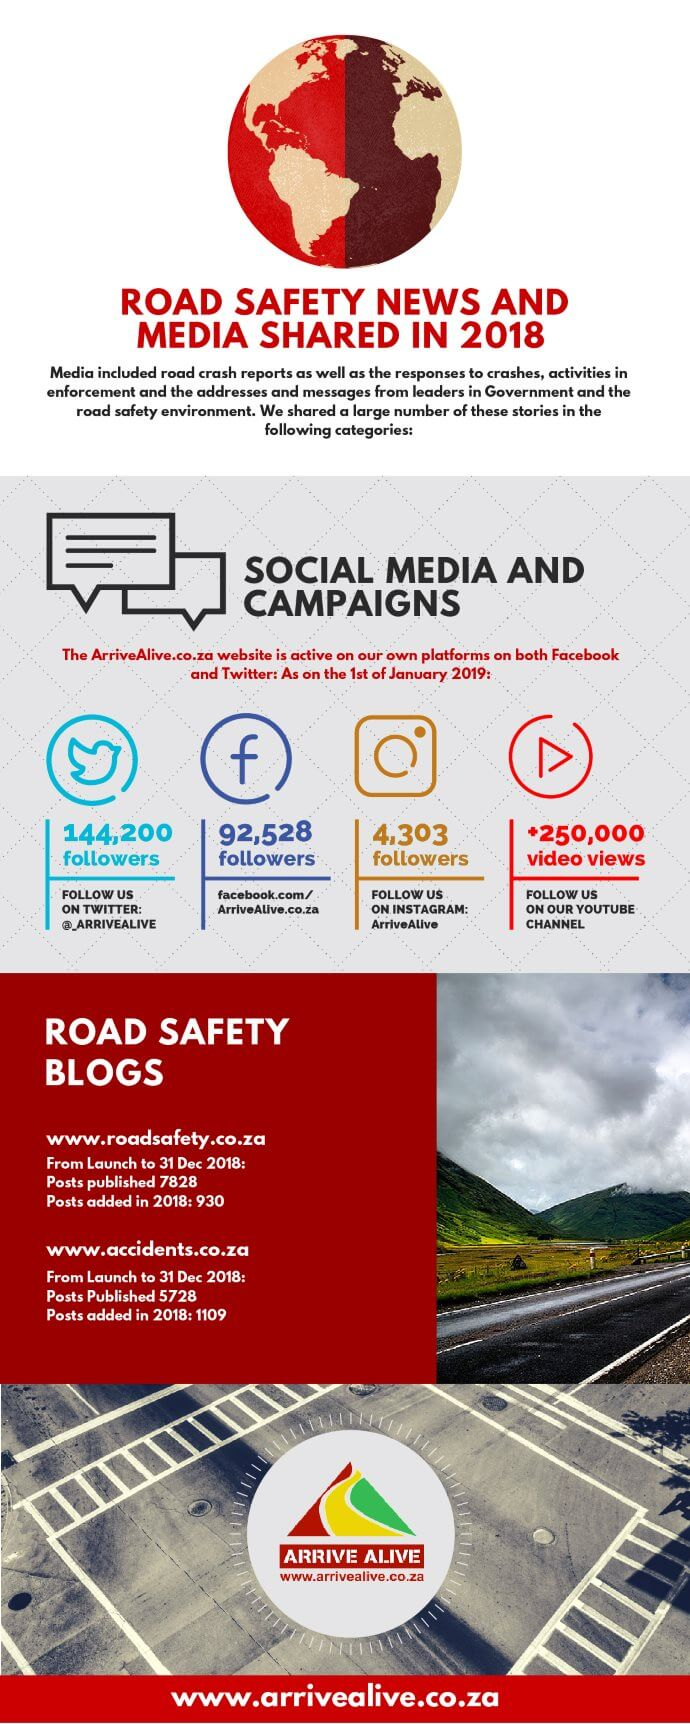 The Arrive Alive Online Initiative 2018 review